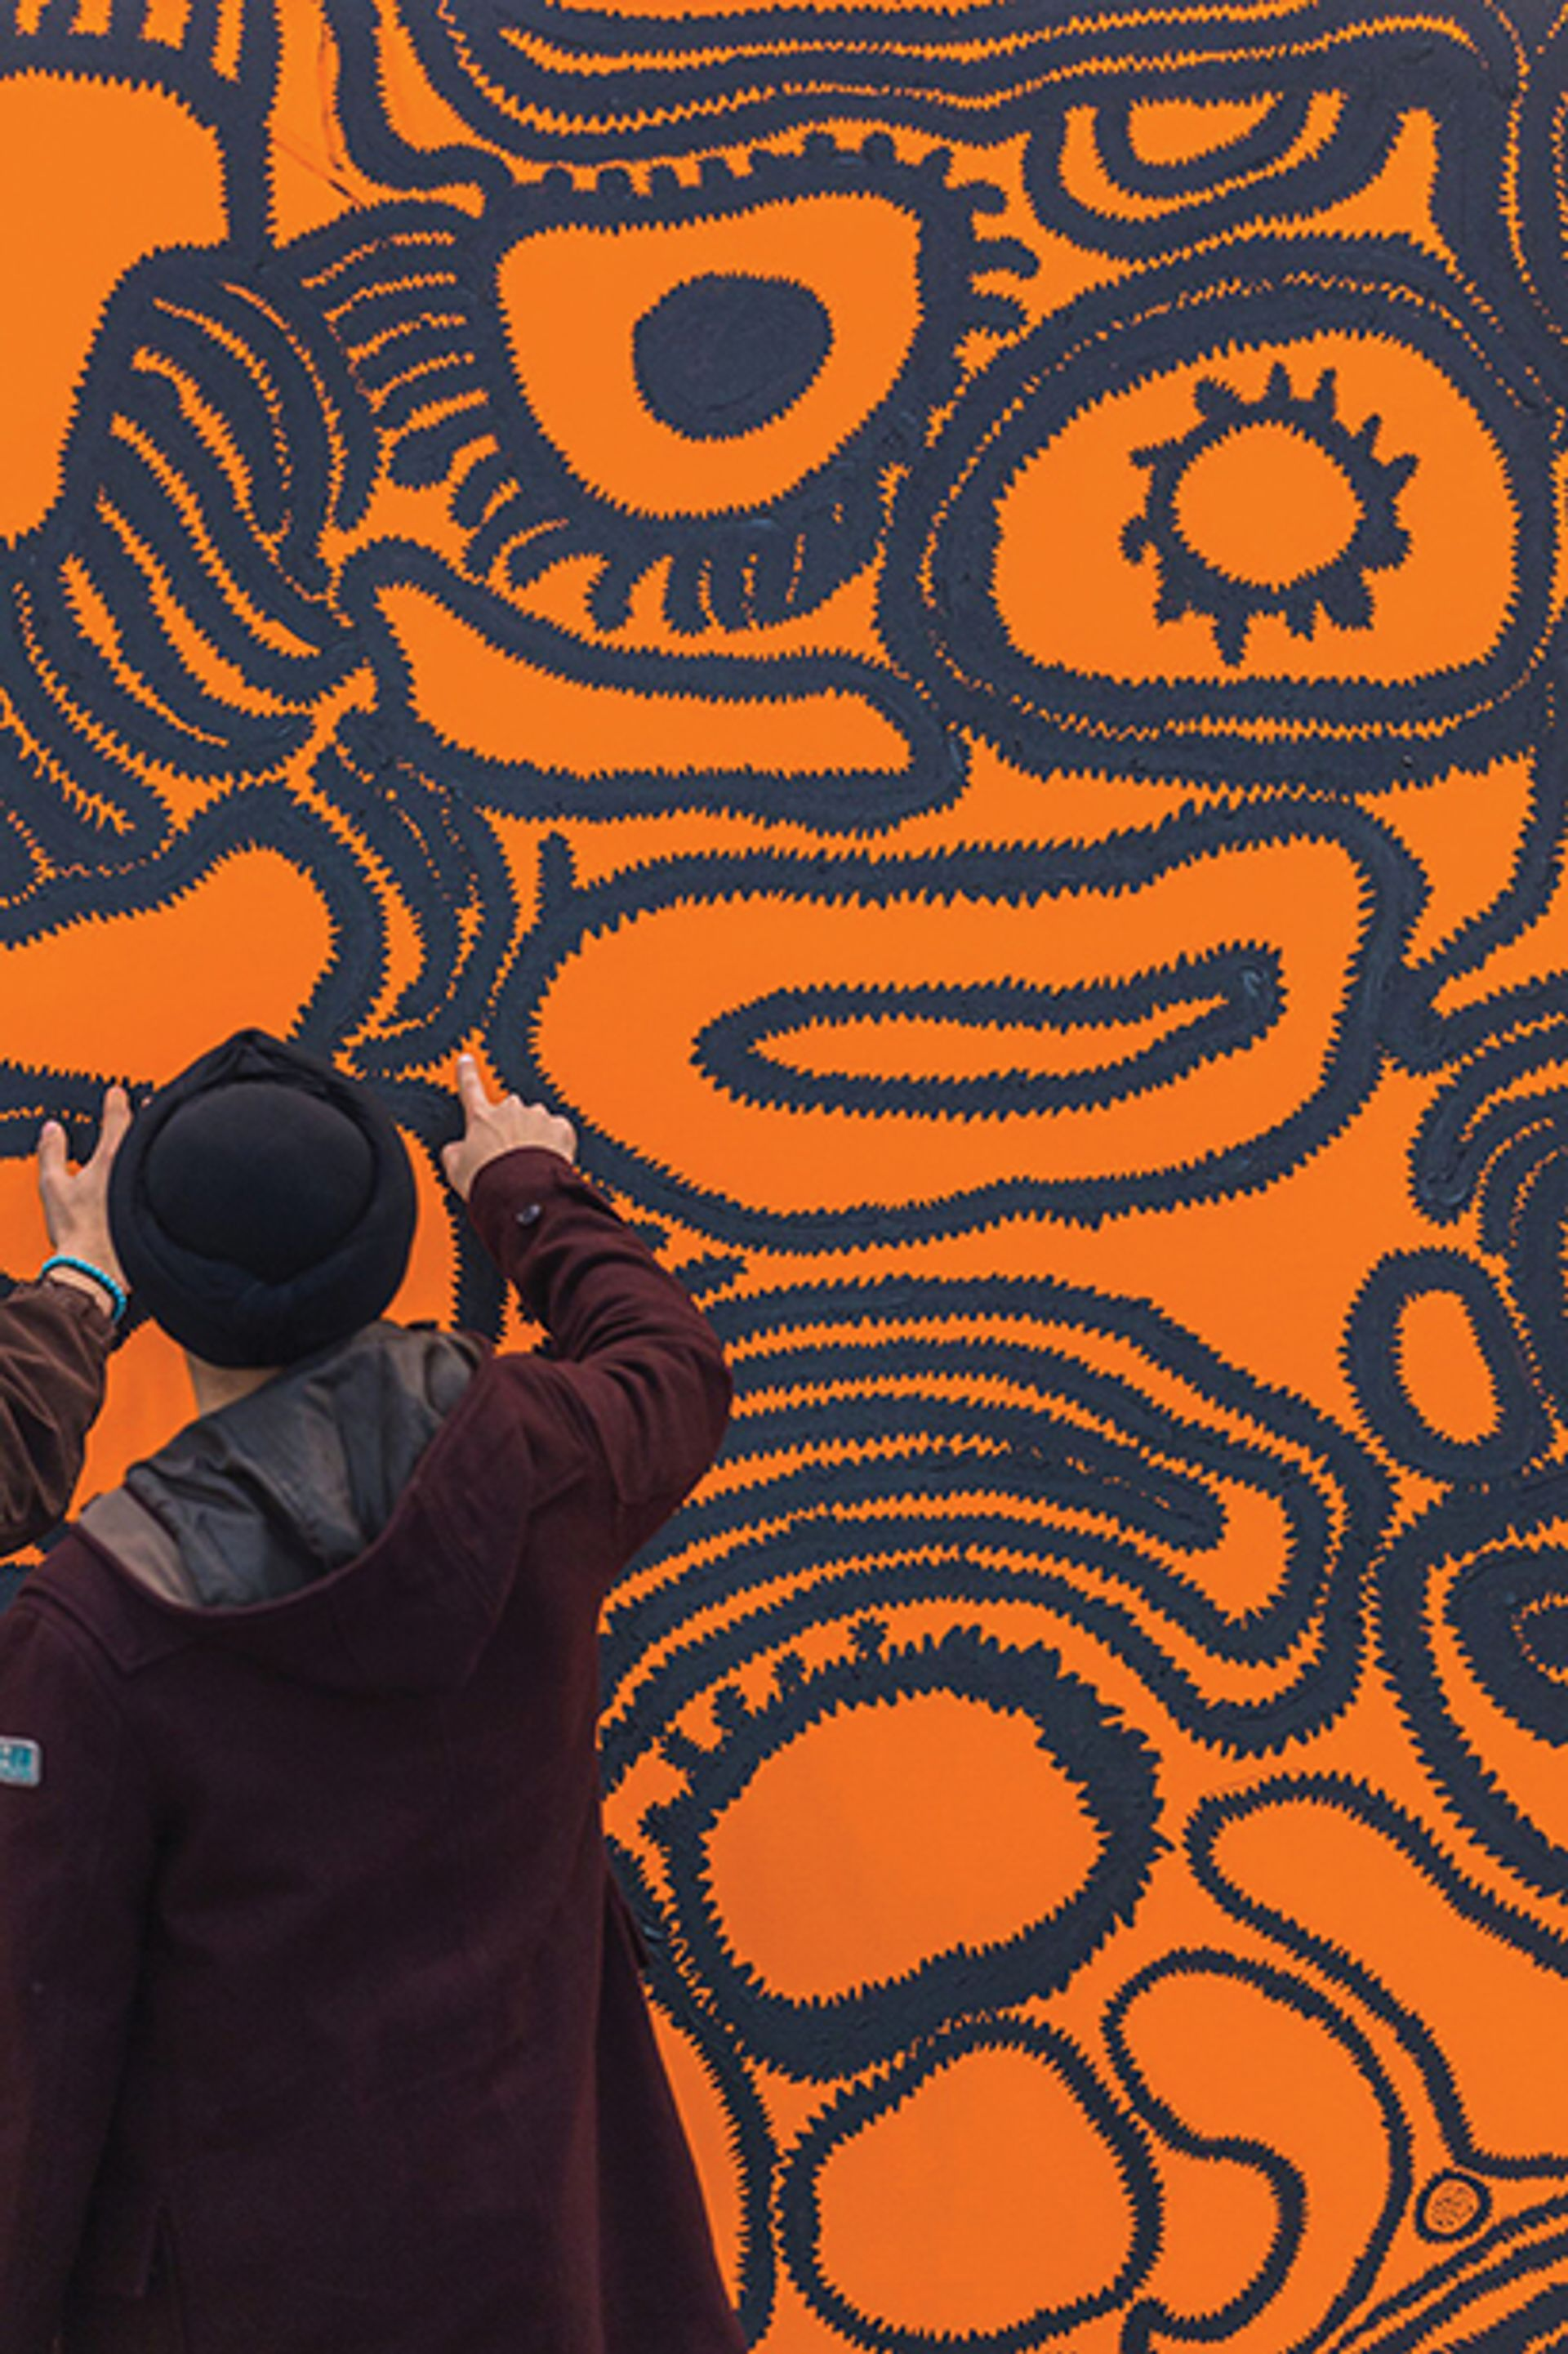 Shape of my Heart; by Yayoi Kusama (2015) which was exhibited for the first time at the India Art Fair 2018. © Yayoi Kusama; Courtesy of David Zwirner. Photo: Andy Barnham